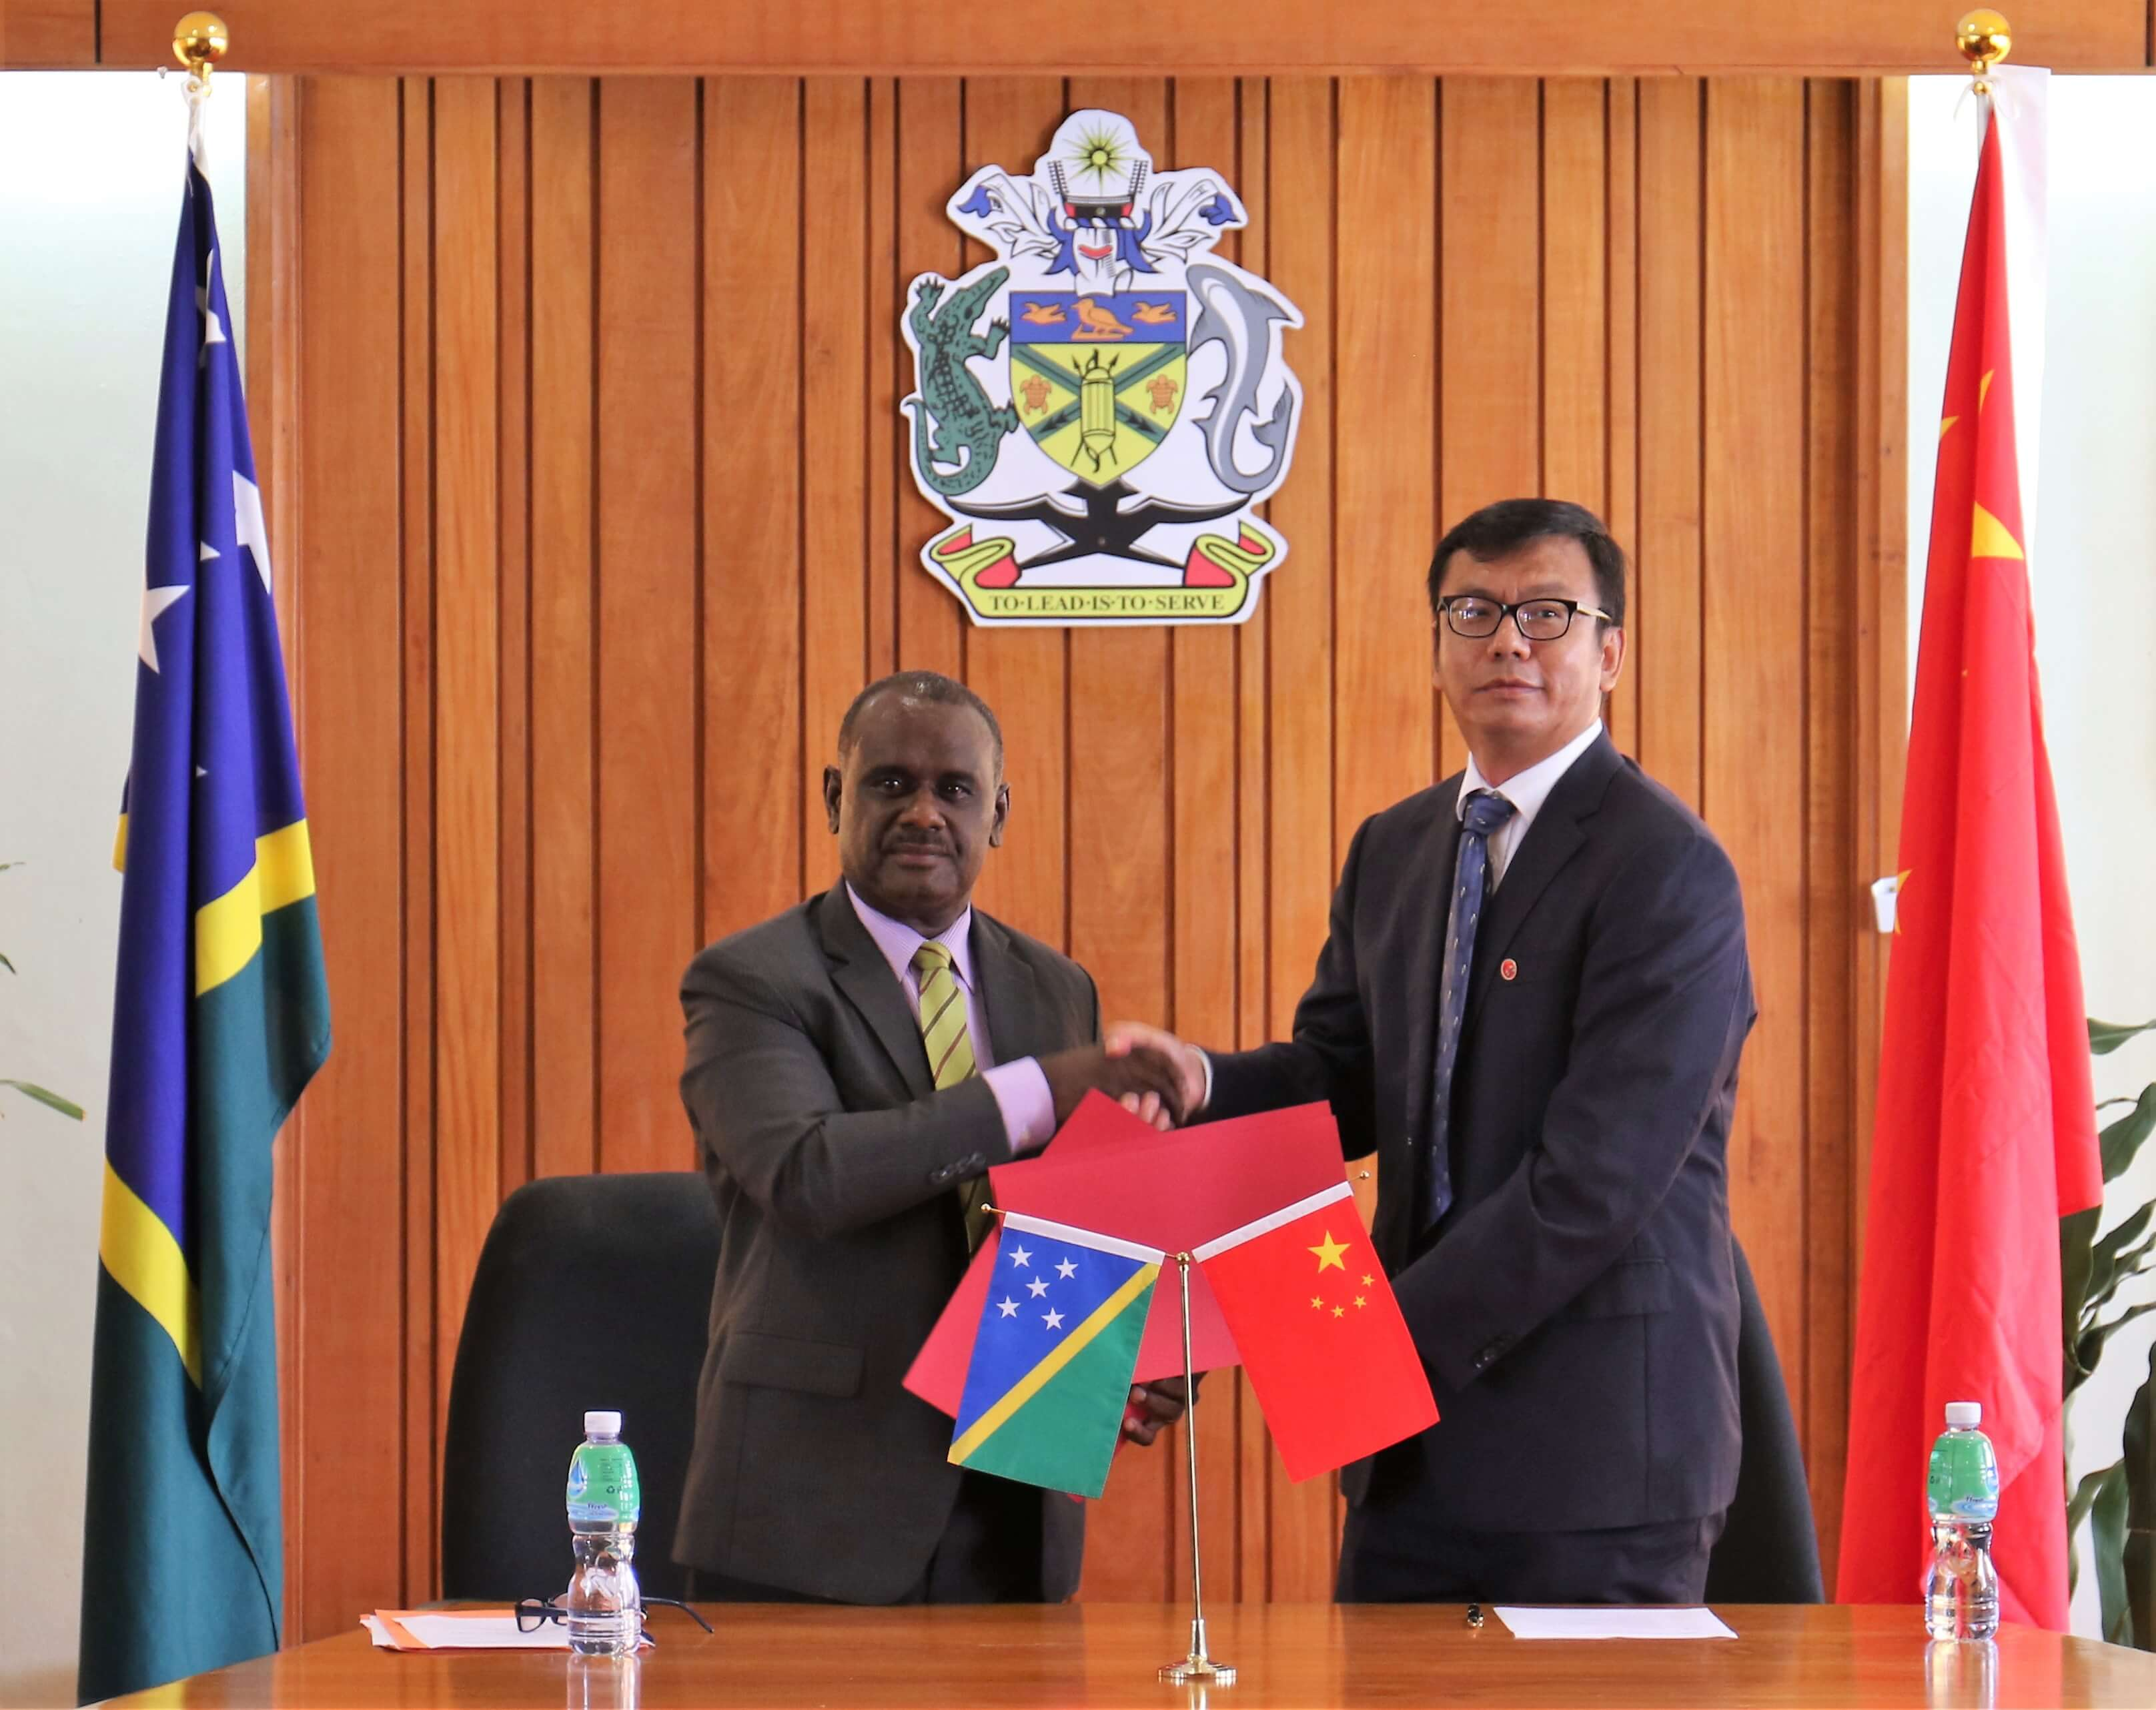 Minister Manele and PRC Chargé D'affaires Yao Ming exchanging of notes after the signing ceremony.